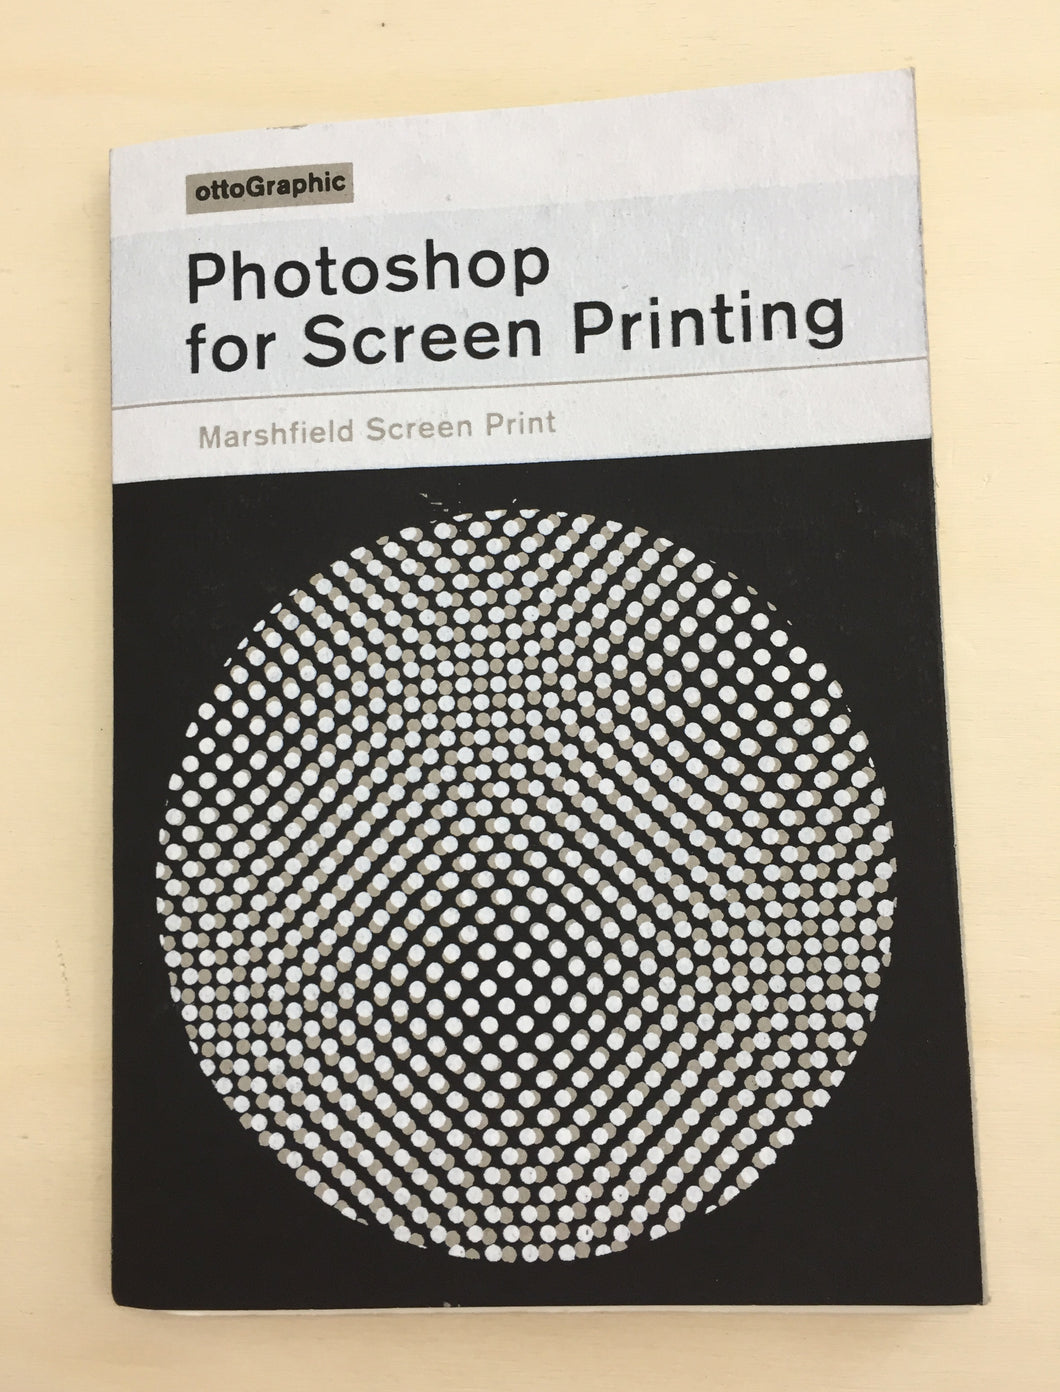 Photoshop for Screen Printing | Ottographic